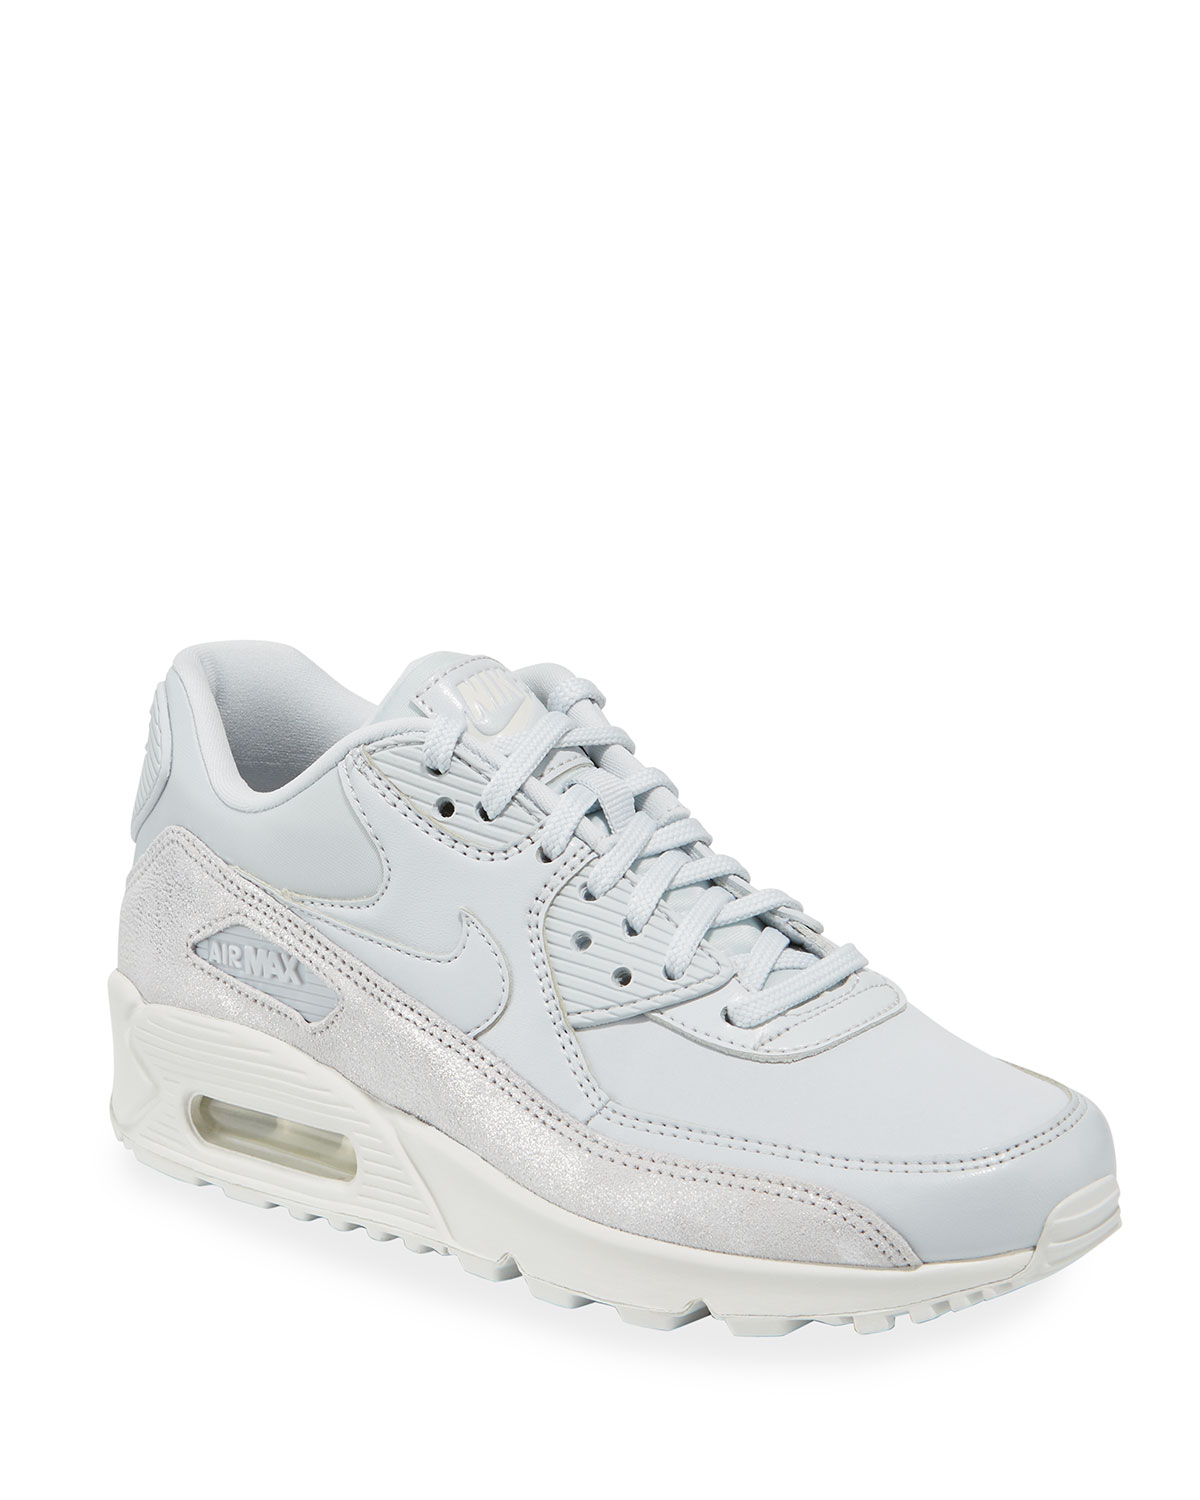 timeless design 9da79 31a50 Nike Air Max 90 Premium Leather Sneakers